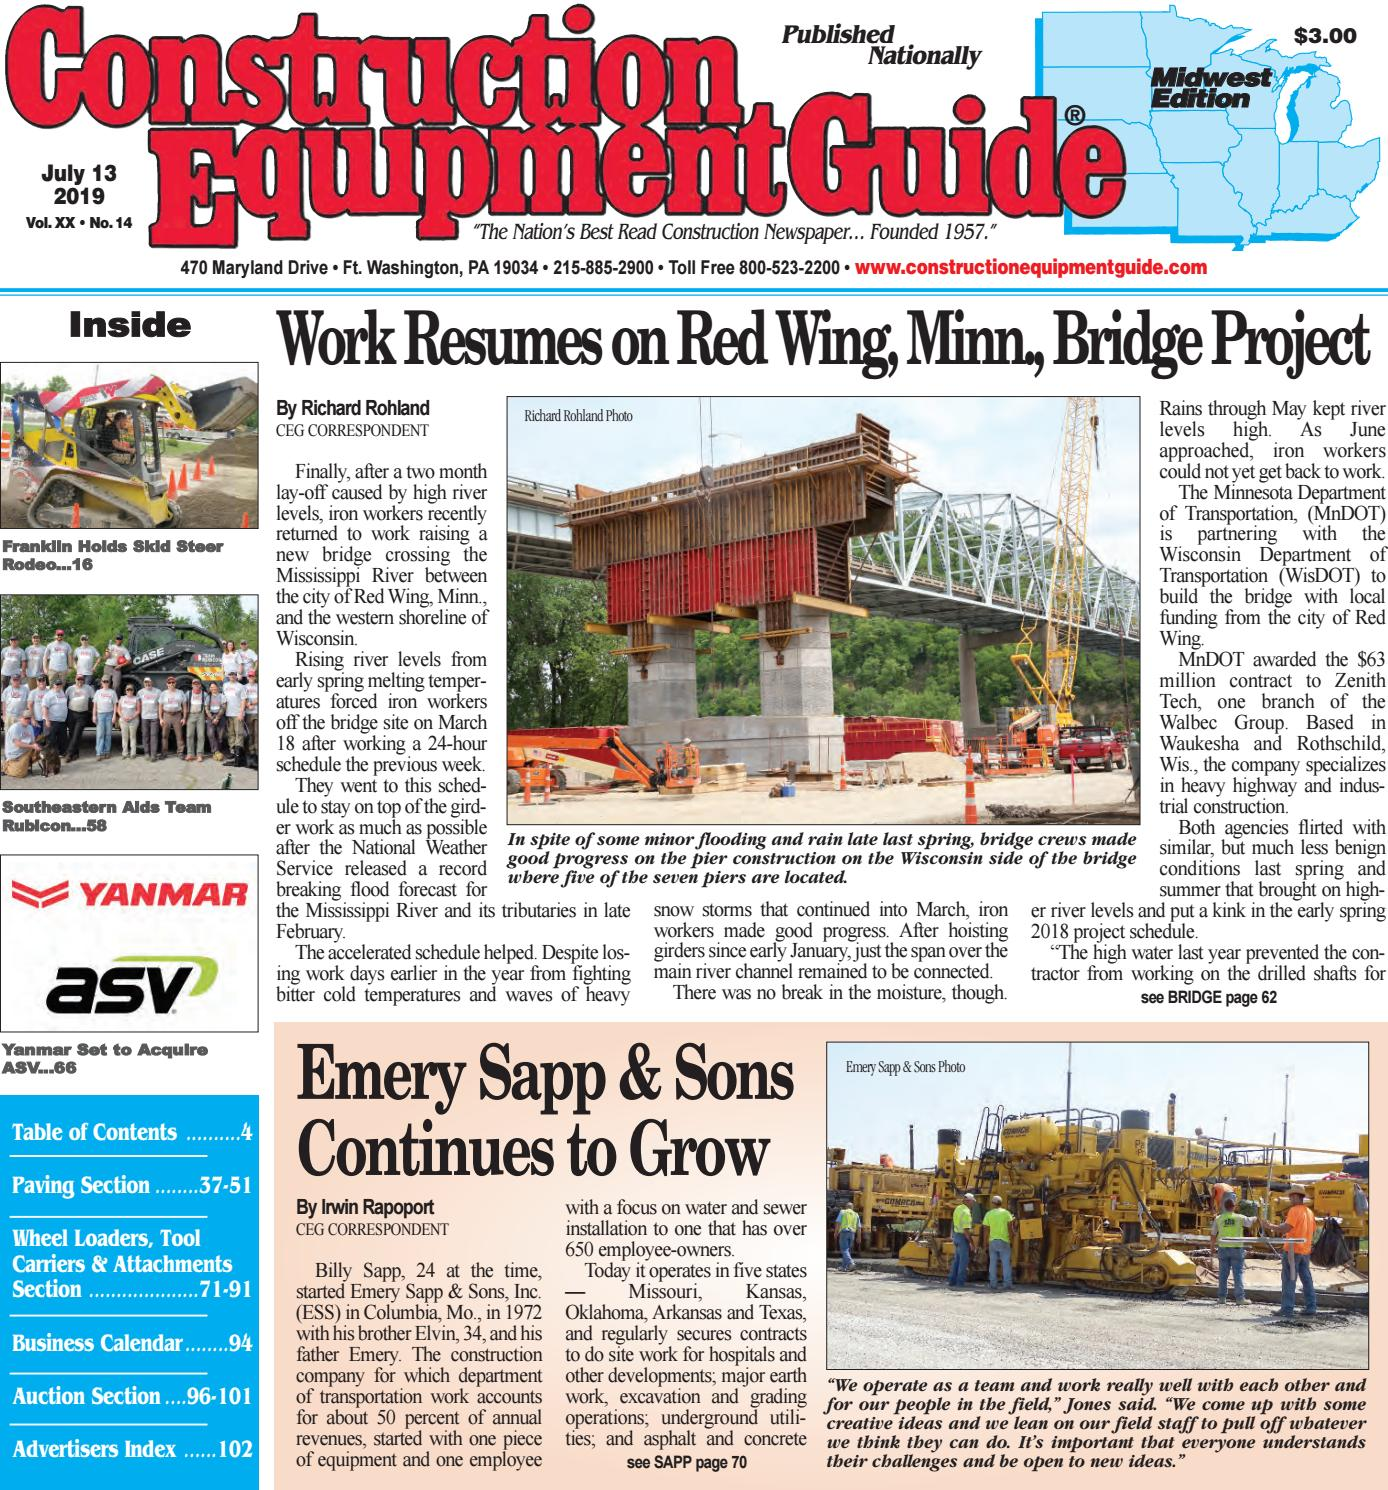 Midwest 14 July 13, 2019 by Construction Equipment Guide - issuu